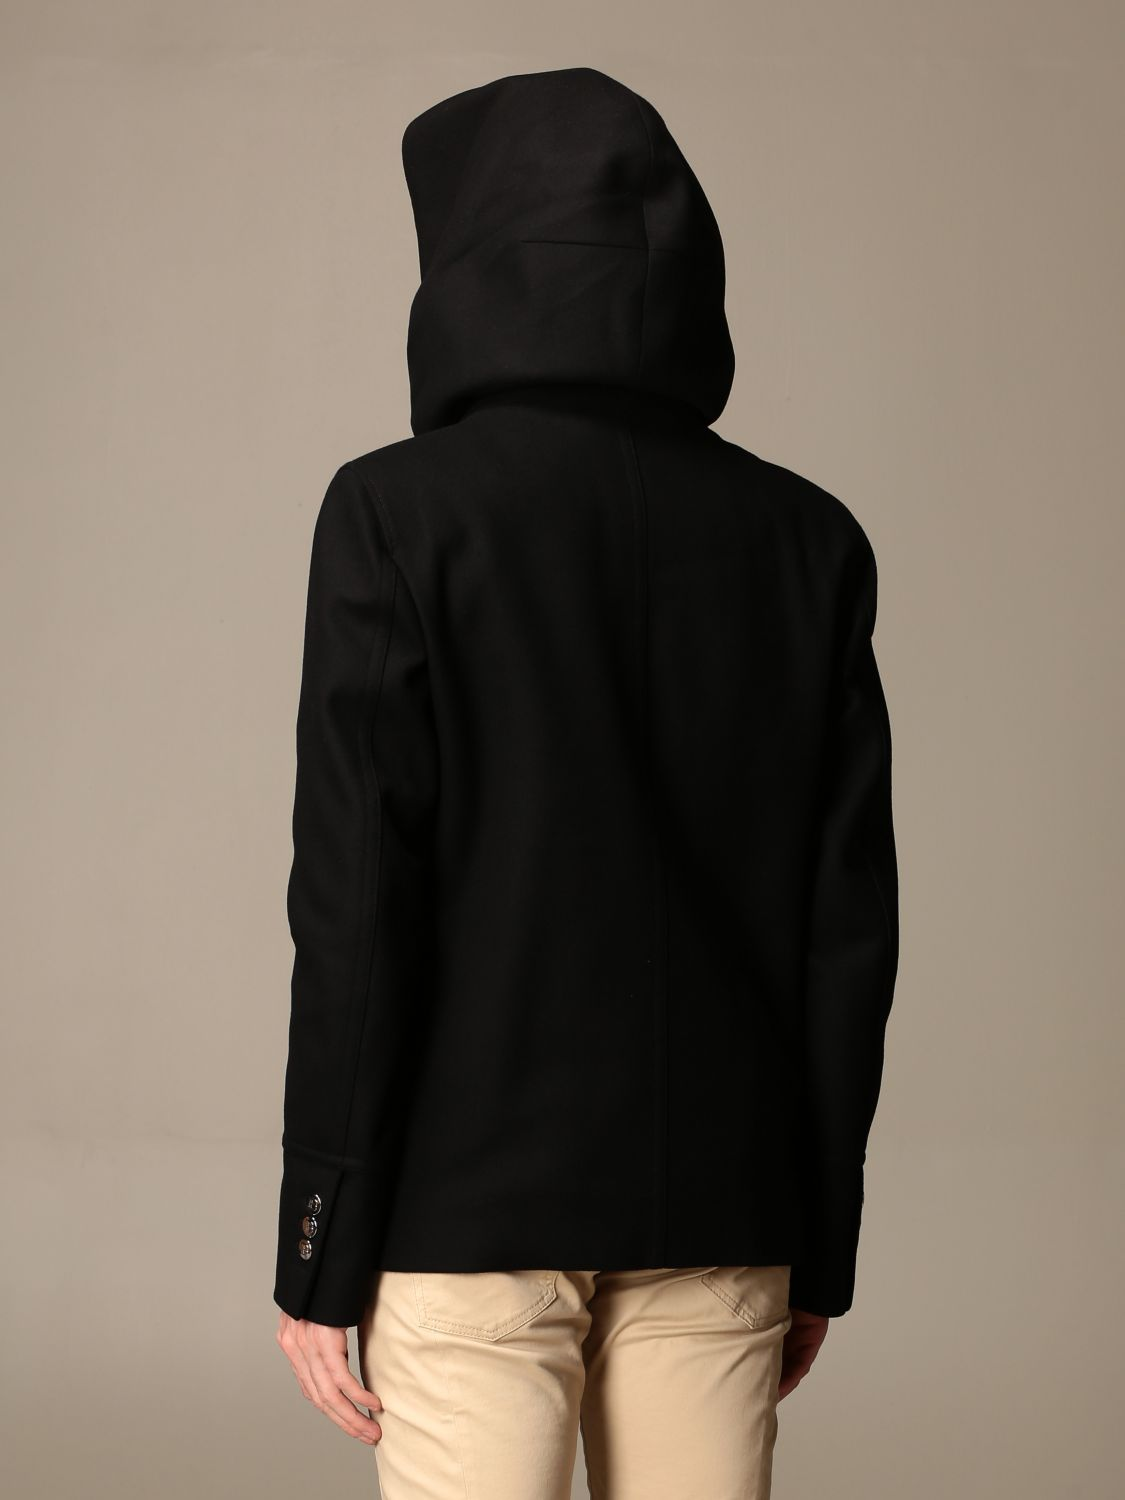 Coat Balmain: Coat men Balmain black 3